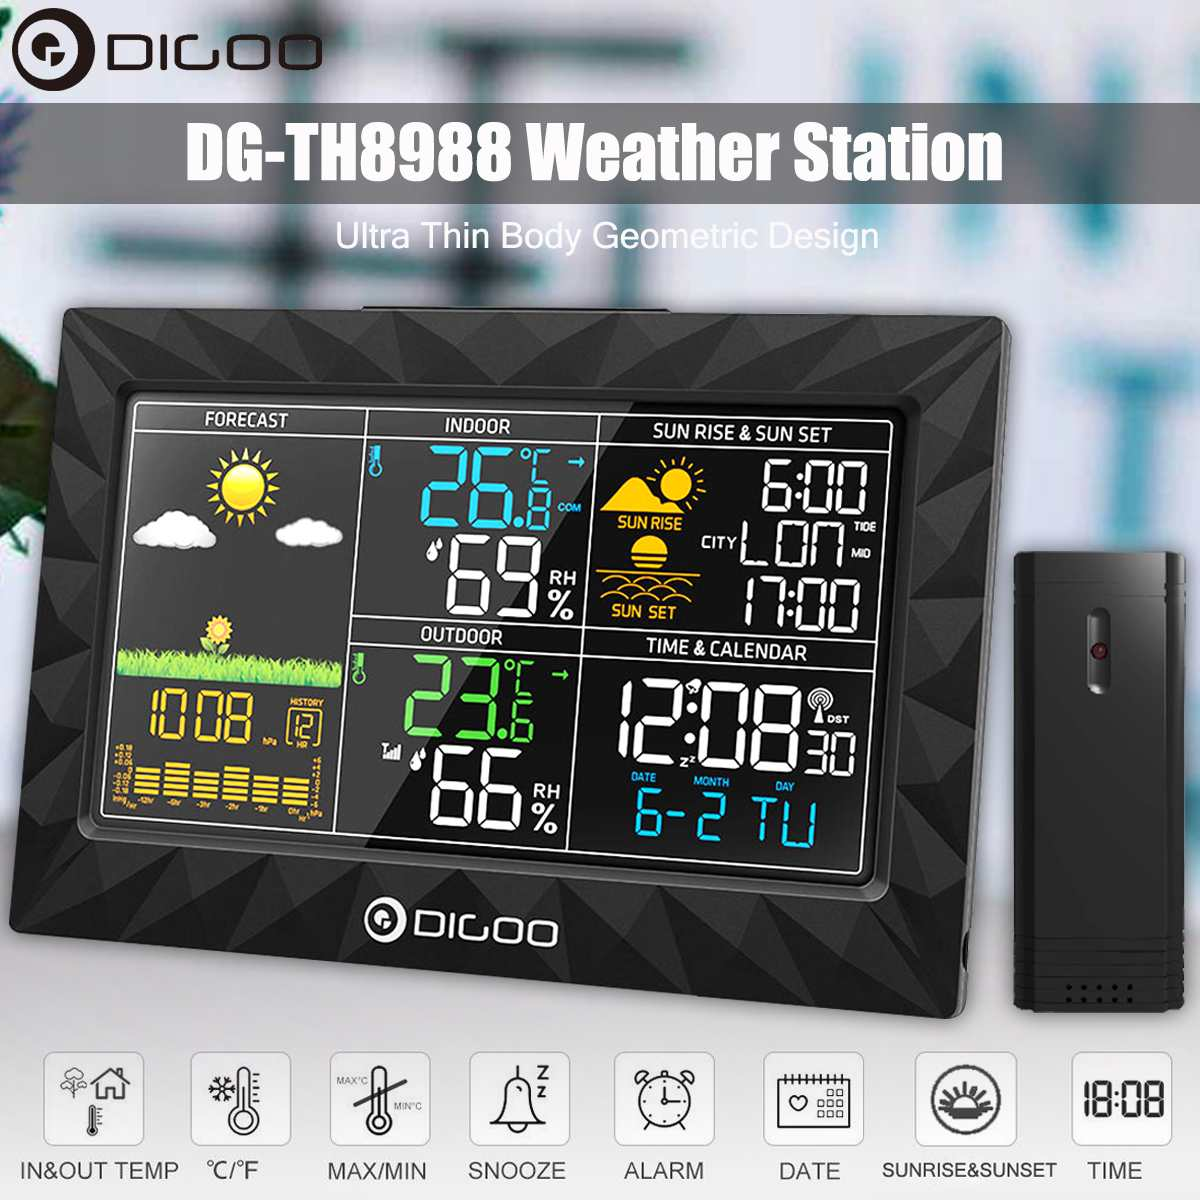 Weather Station Outdoor Thermometer Hygrometer Sunrise Sunset Display Indoor Temperature Humidity Sensor Colorful Large ScreenWeather Station Outdoor Thermometer Hygrometer Sunrise Sunset Display Indoor Temperature Humidity Sensor Colorful Large Screen